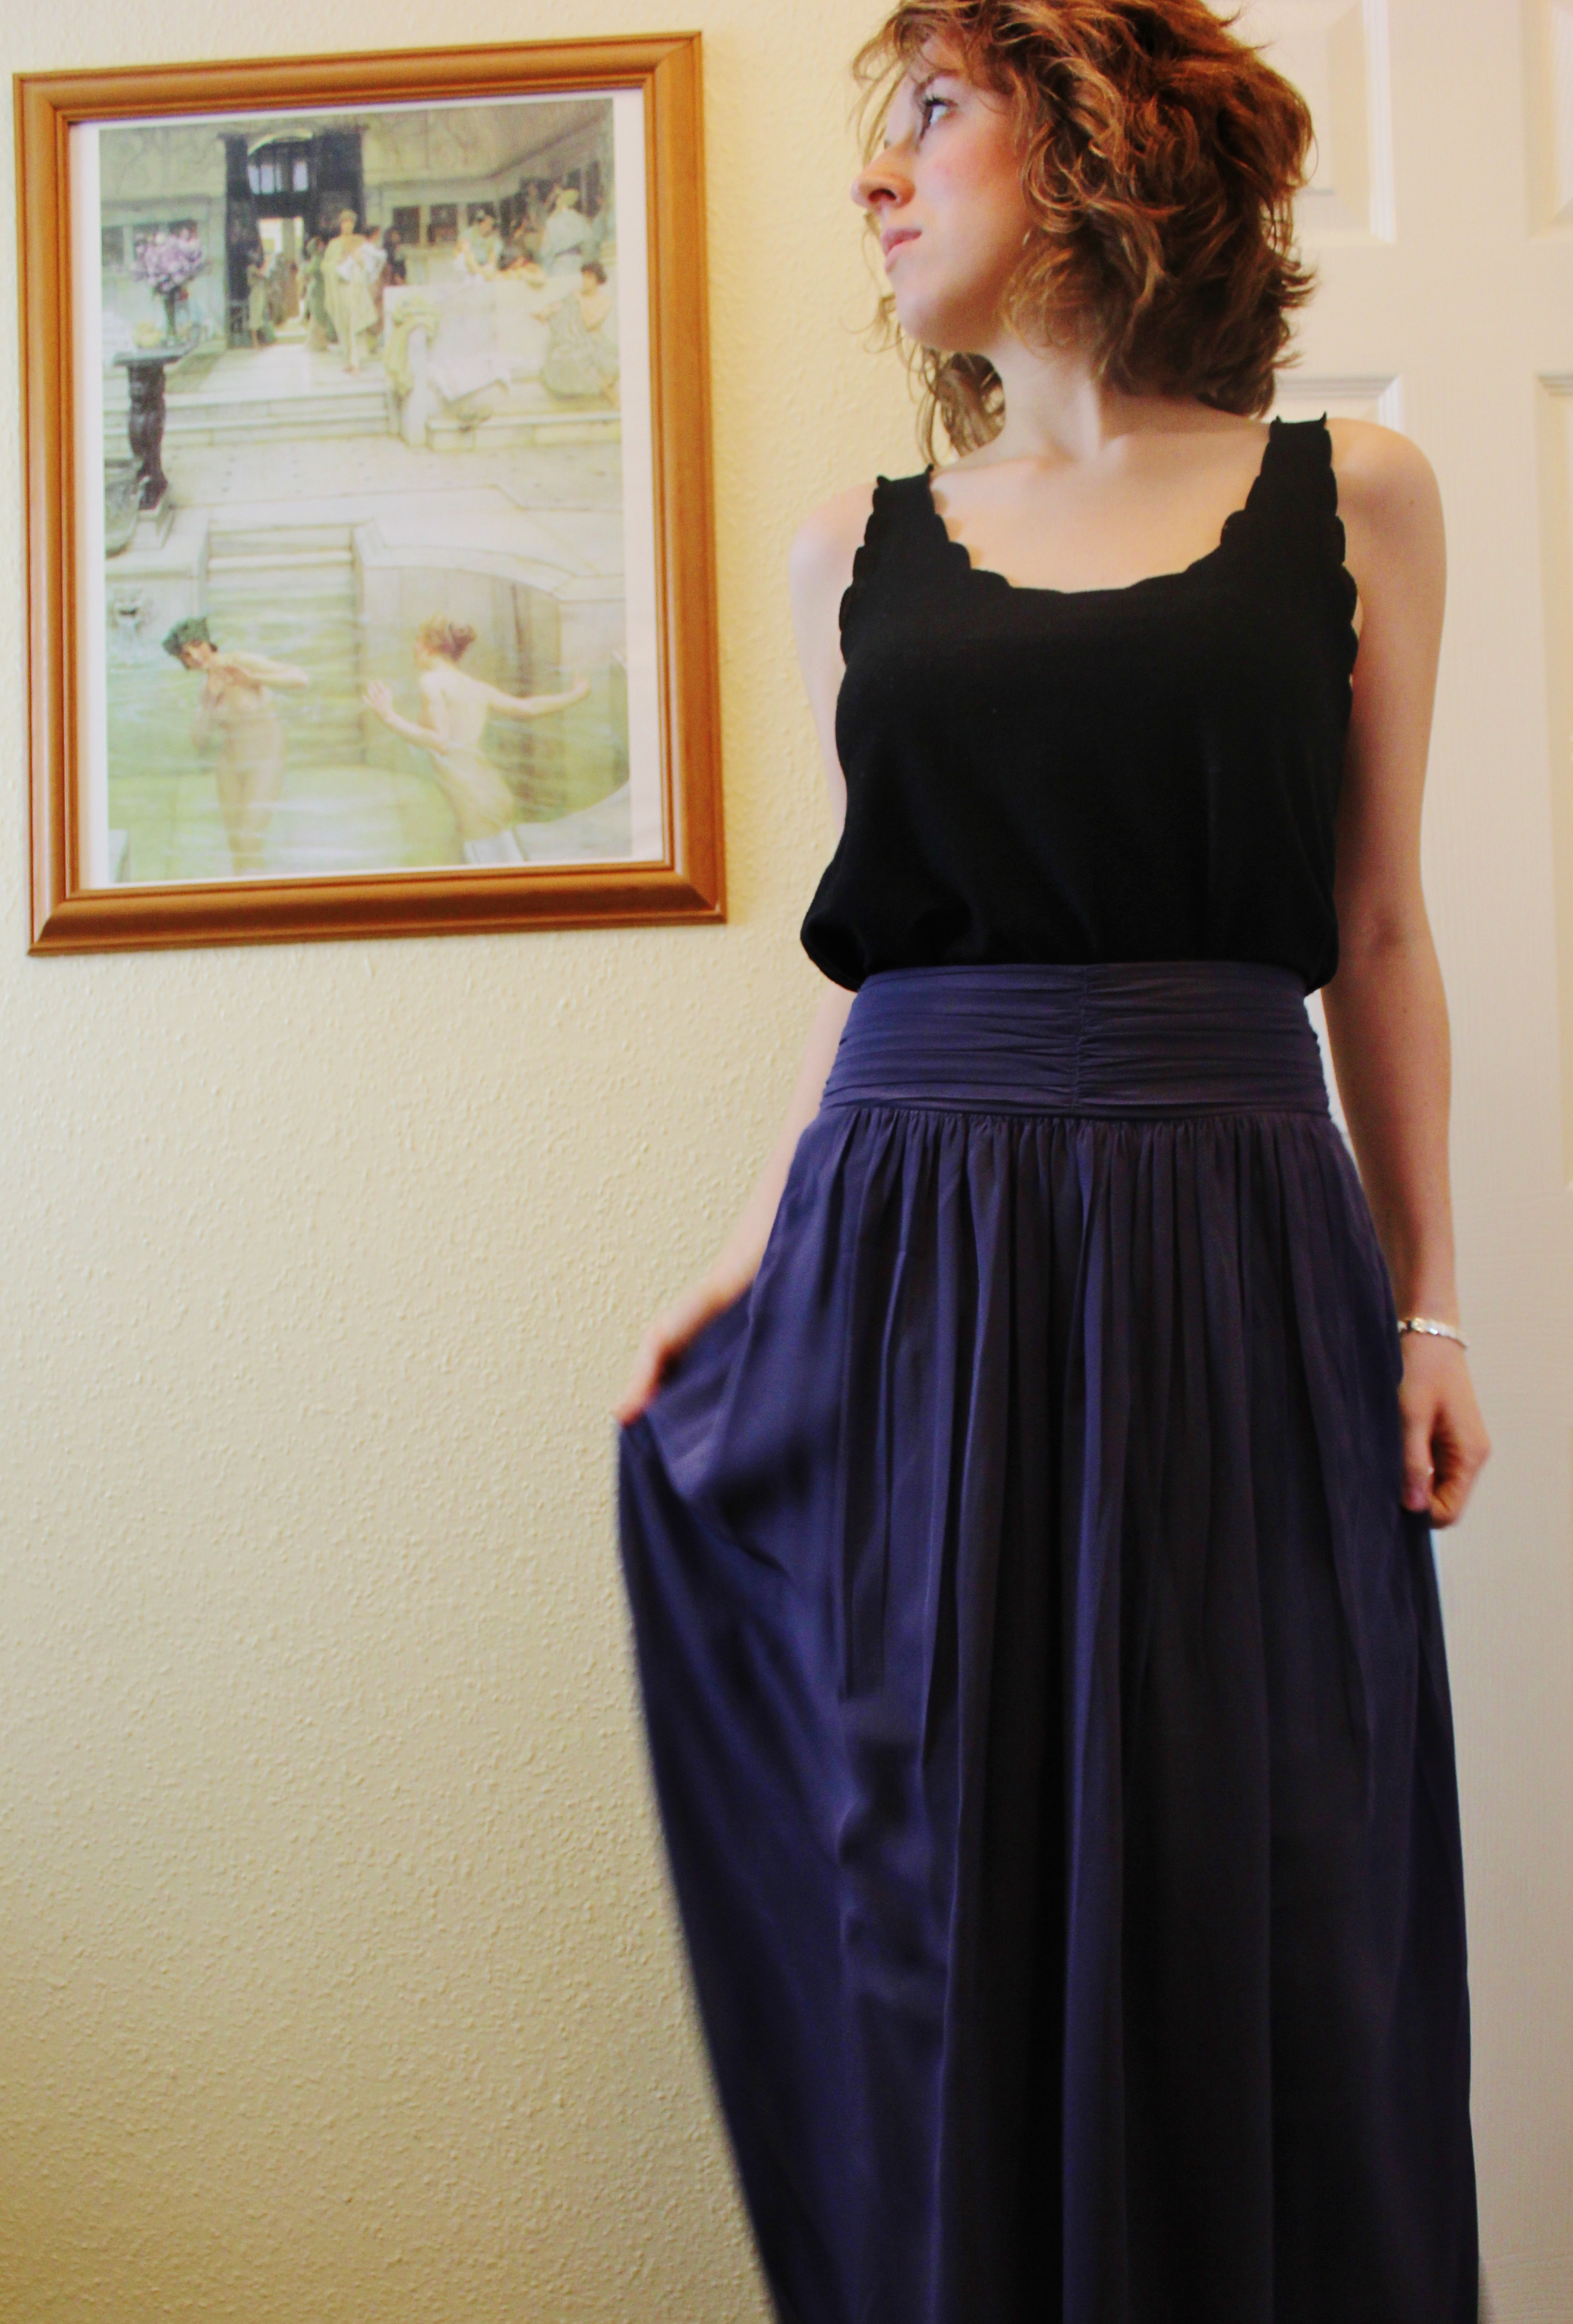 Leather jacket hoi an - My Full Length Skirt From Hoi An Silky On The Inside Chiffon On The Outside A Perfect Fit